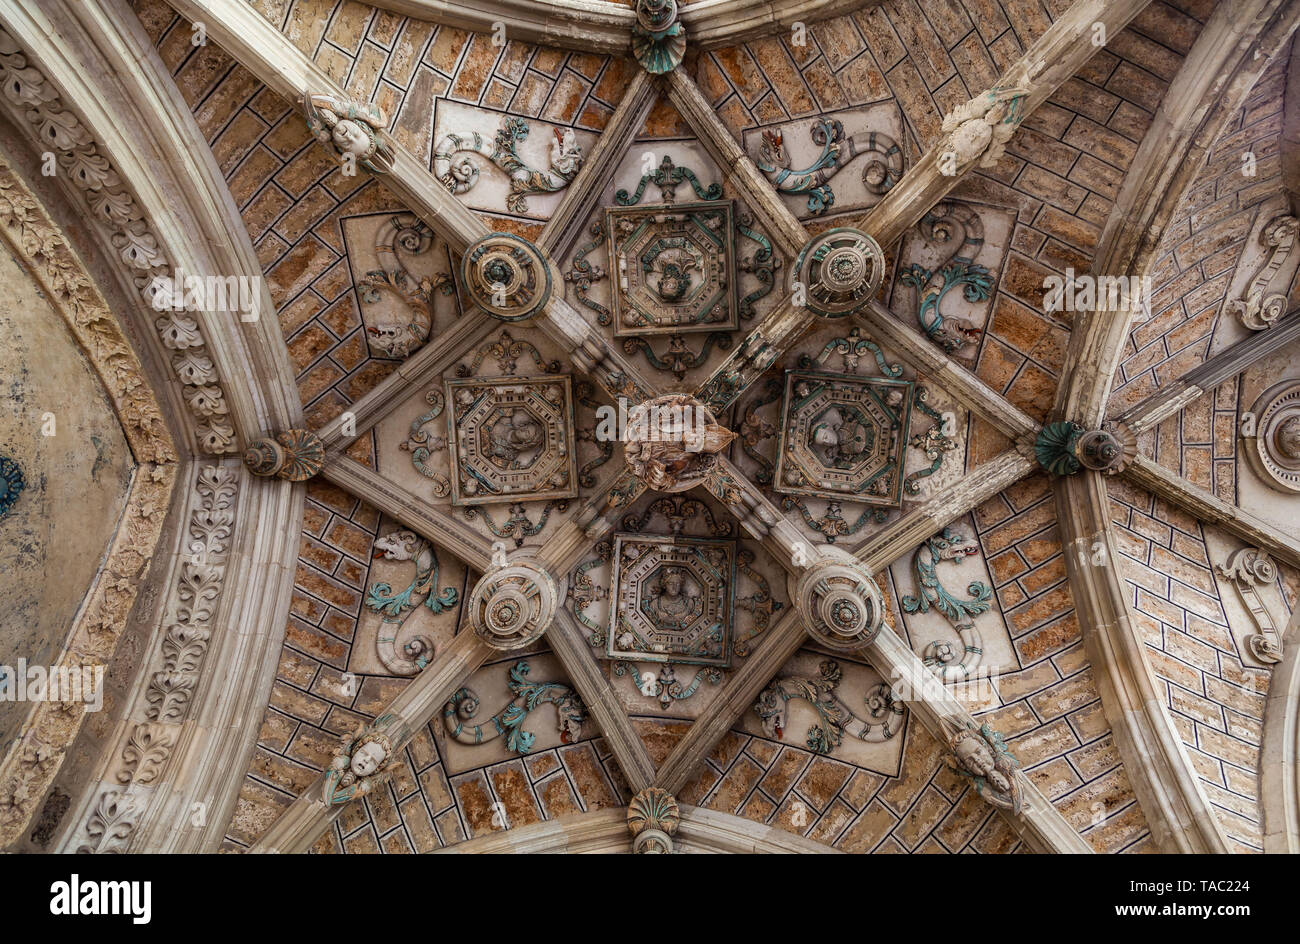 Leon Cathedral, intricate cloister vault ceiling - Stock Image